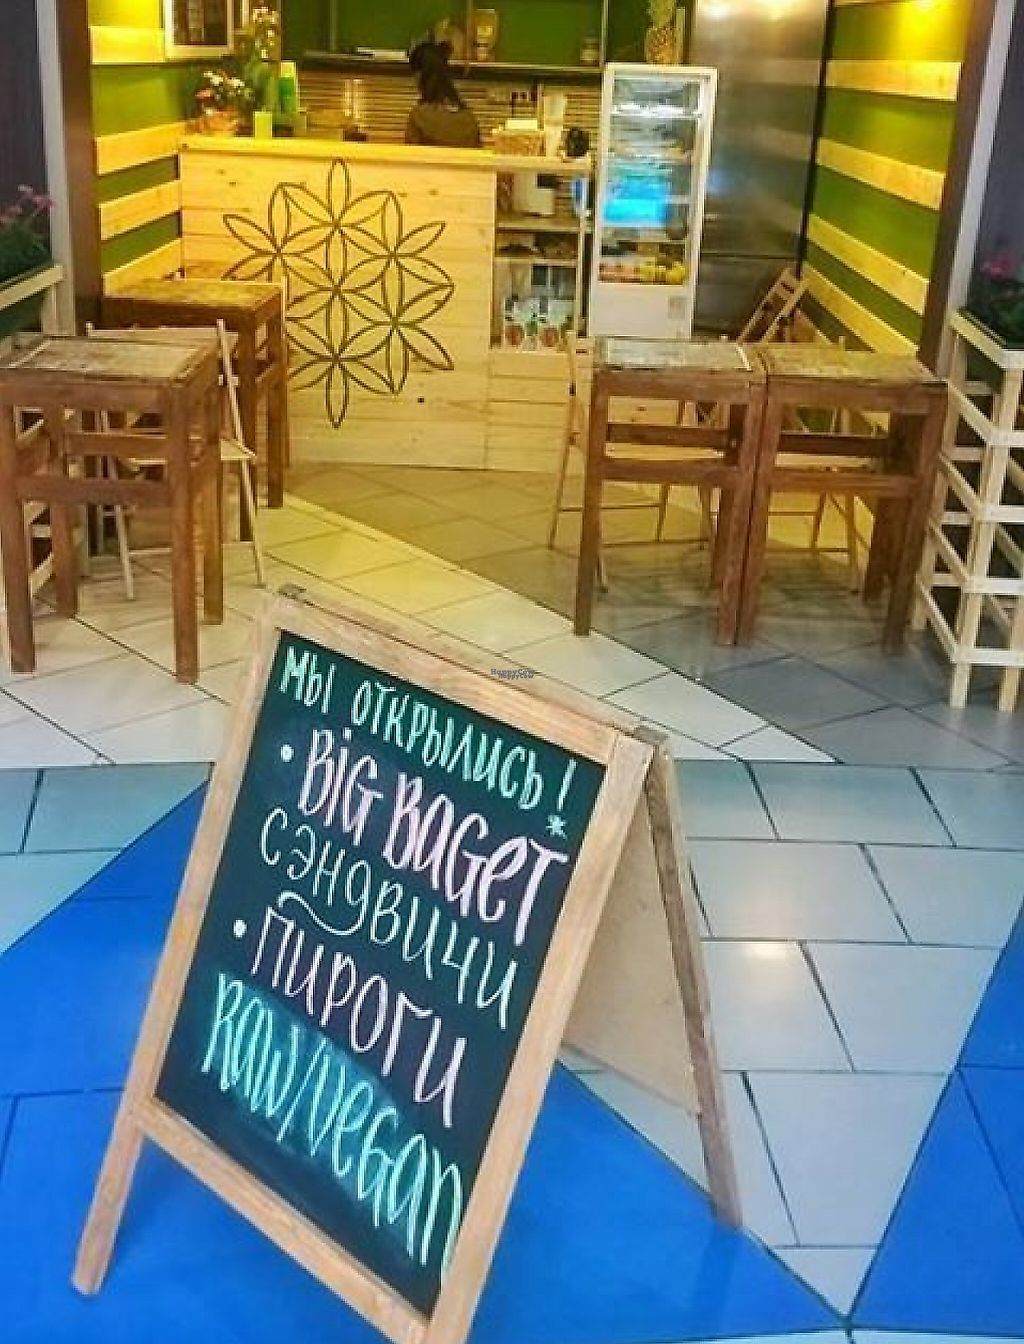 """Photo of Anahata Fine Food   by <a href=""""/members/profile/ANAHATAFineFood"""">ANAHATAFineFood</a> <br/>Opened on 17 mart 2017 WW work 7 days a week: Mon - Sat 10AM to 9PM Sun 10AM to 9PM.  Fresh bar, smoozhies, vegan sandwiches, raw and vegan cakes and sweets.  detox menu, smoozhies, tea bar, turkish coffee.  <br/> March 30, 2017  - <a href='/contact/abuse/image/89451/243865'>Report</a>"""